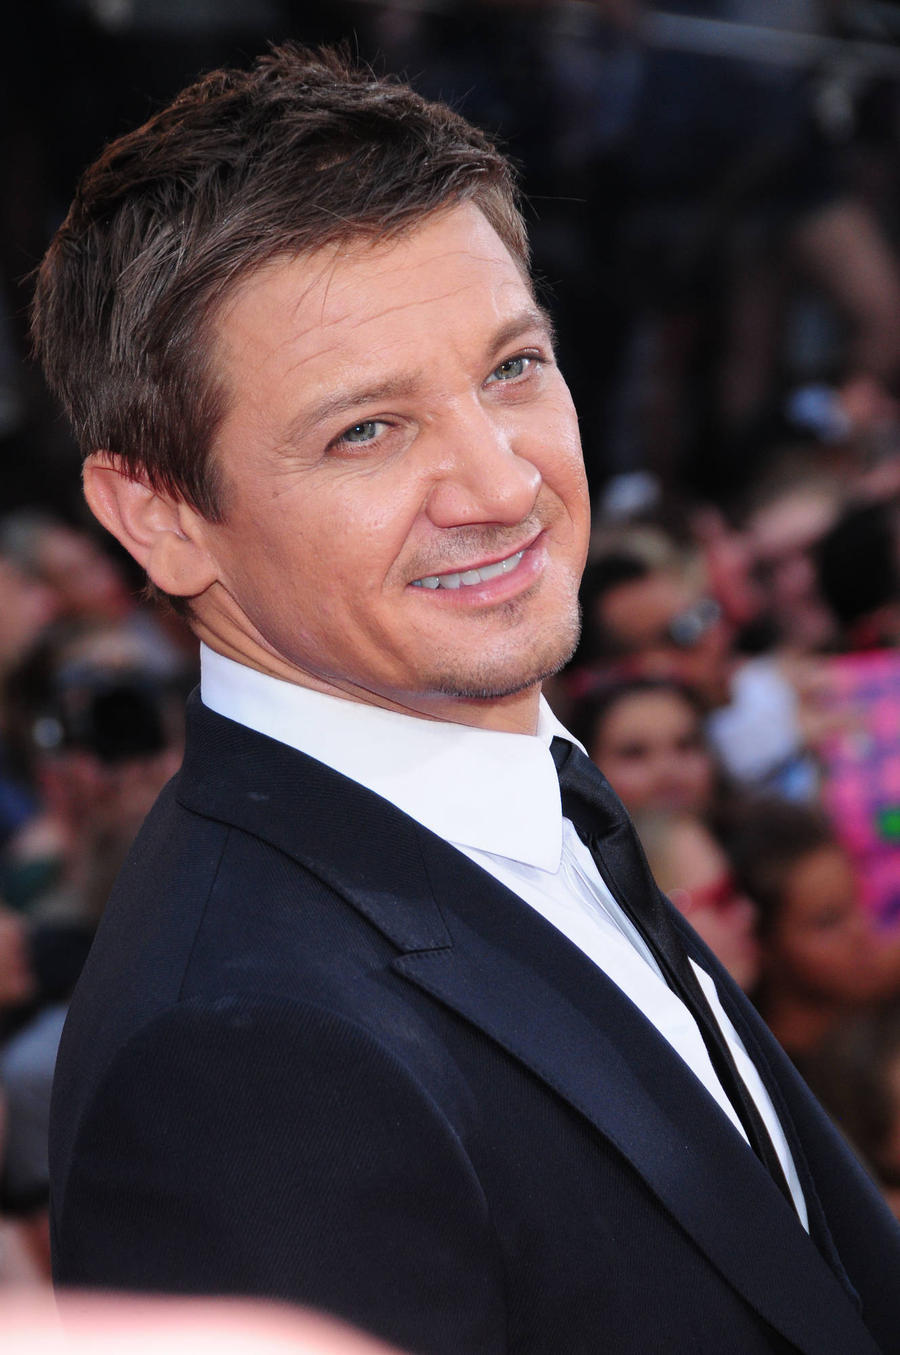 Jeremy Renner And Michael Pena Team Up For Drug Cartel Film